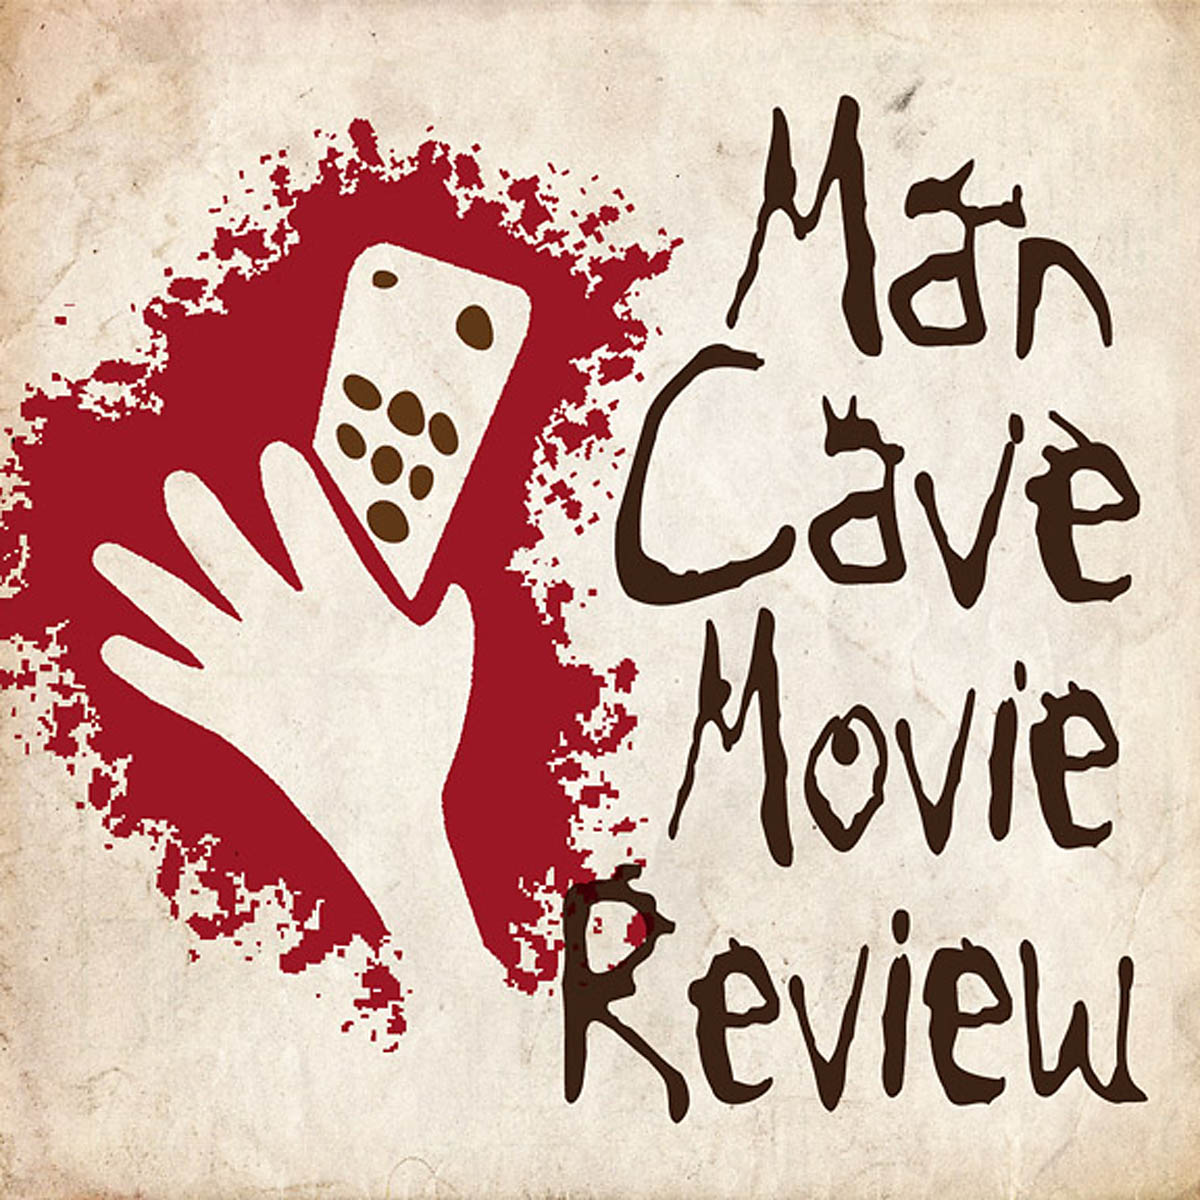 The Mancave Movie Review Podcast show art